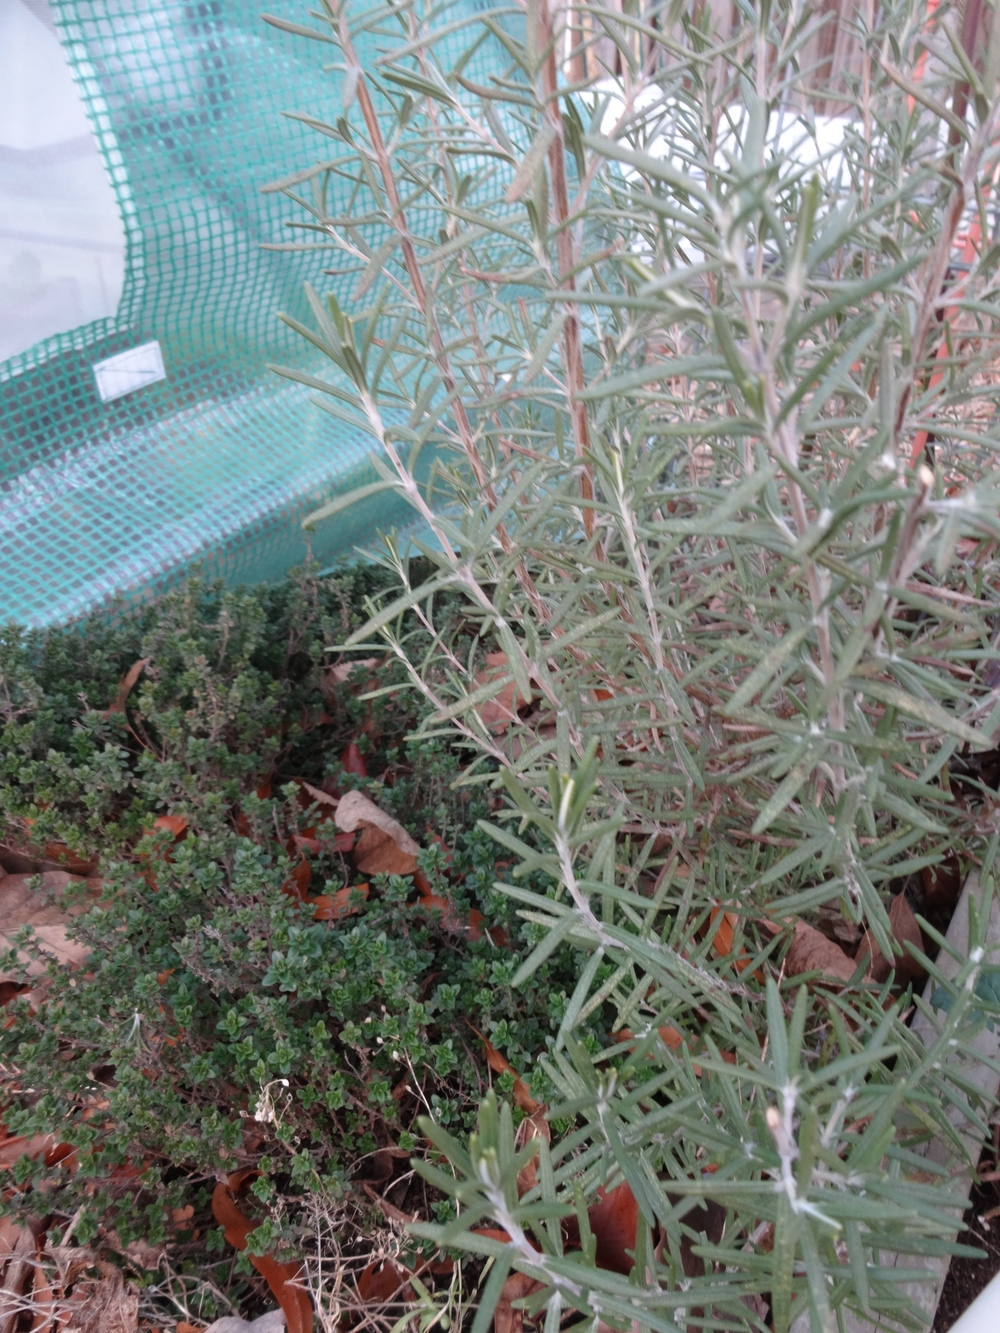 Herbs like thyme, rosemary, and even oregano survive without protection (though they do get some wind blockage from the fences and green houses).